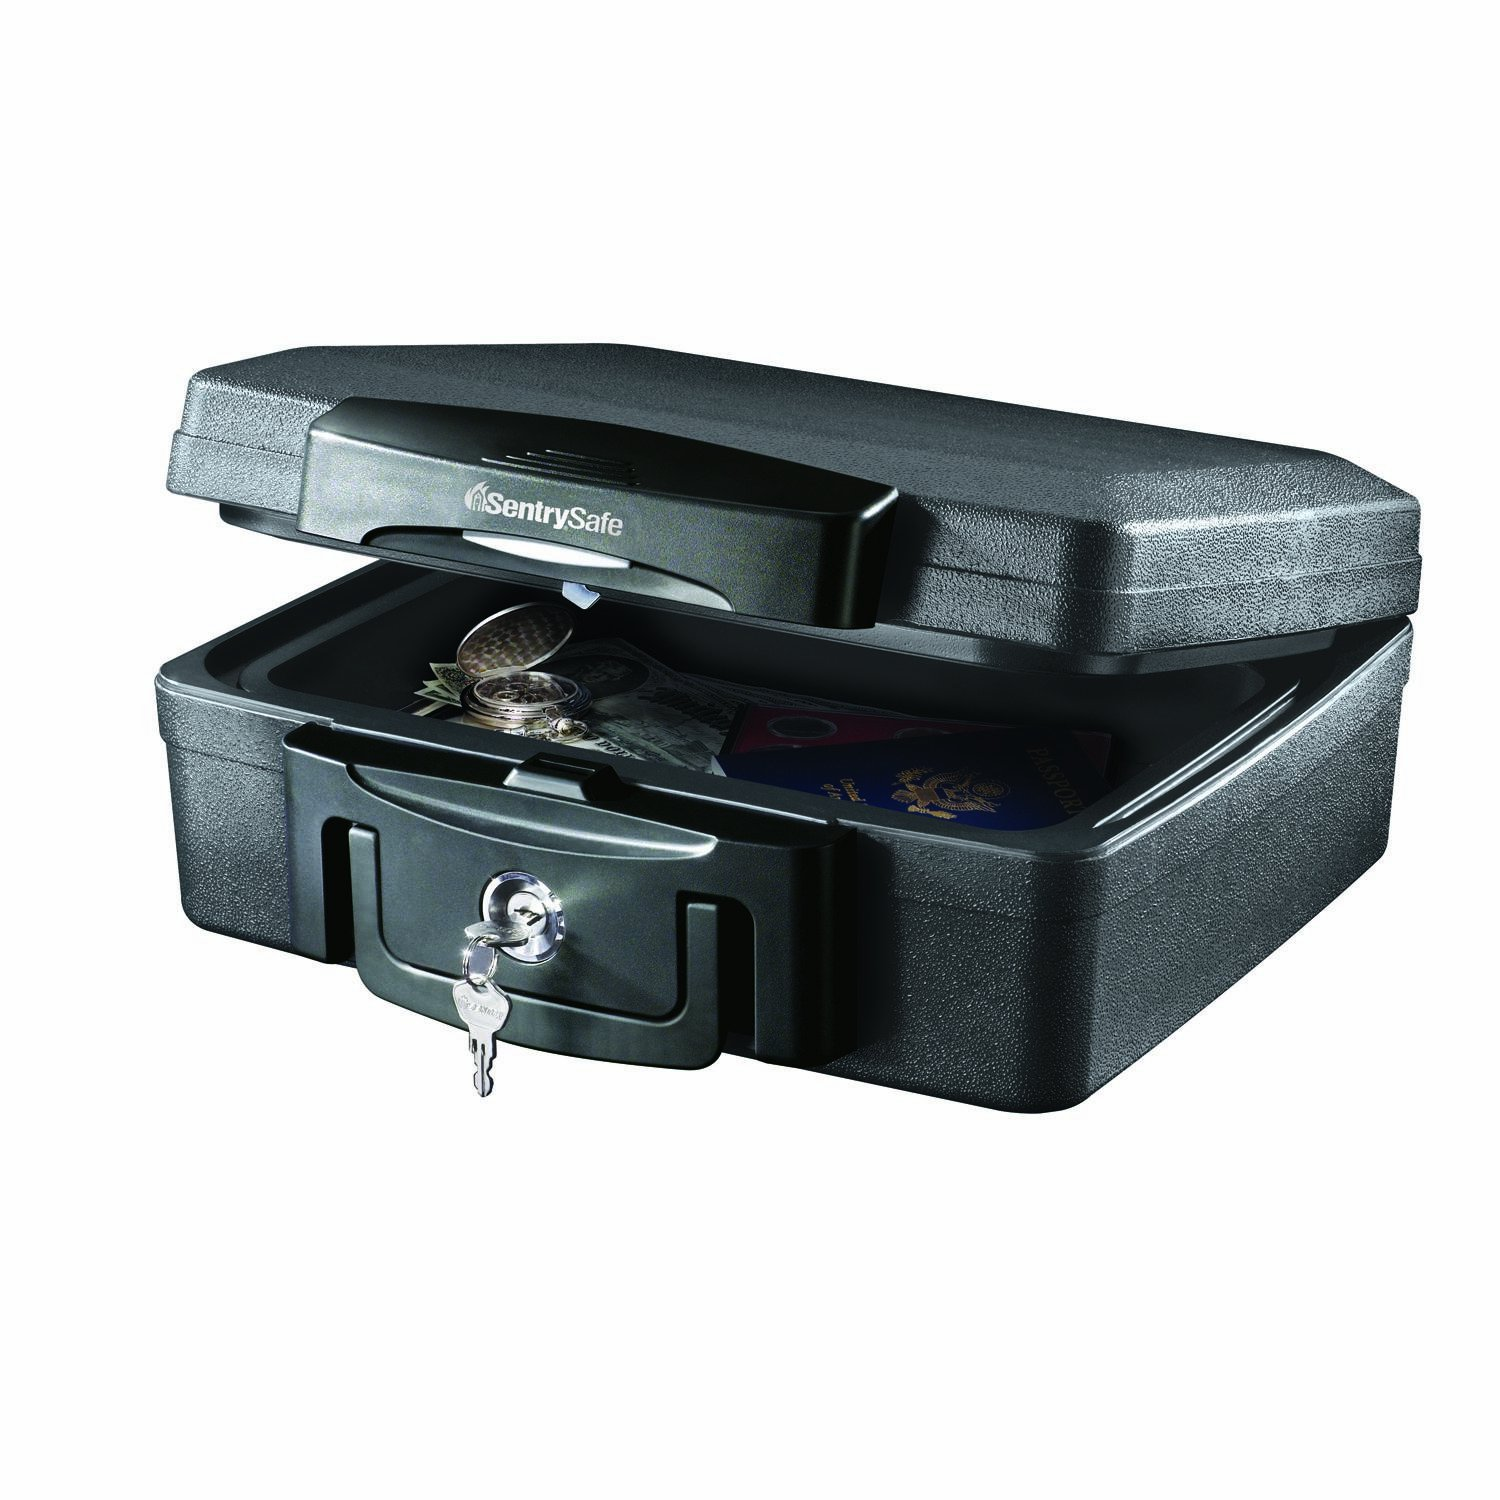 Safe Document Storage Fireproof And Waterproof Lock Box Safe Document Storage